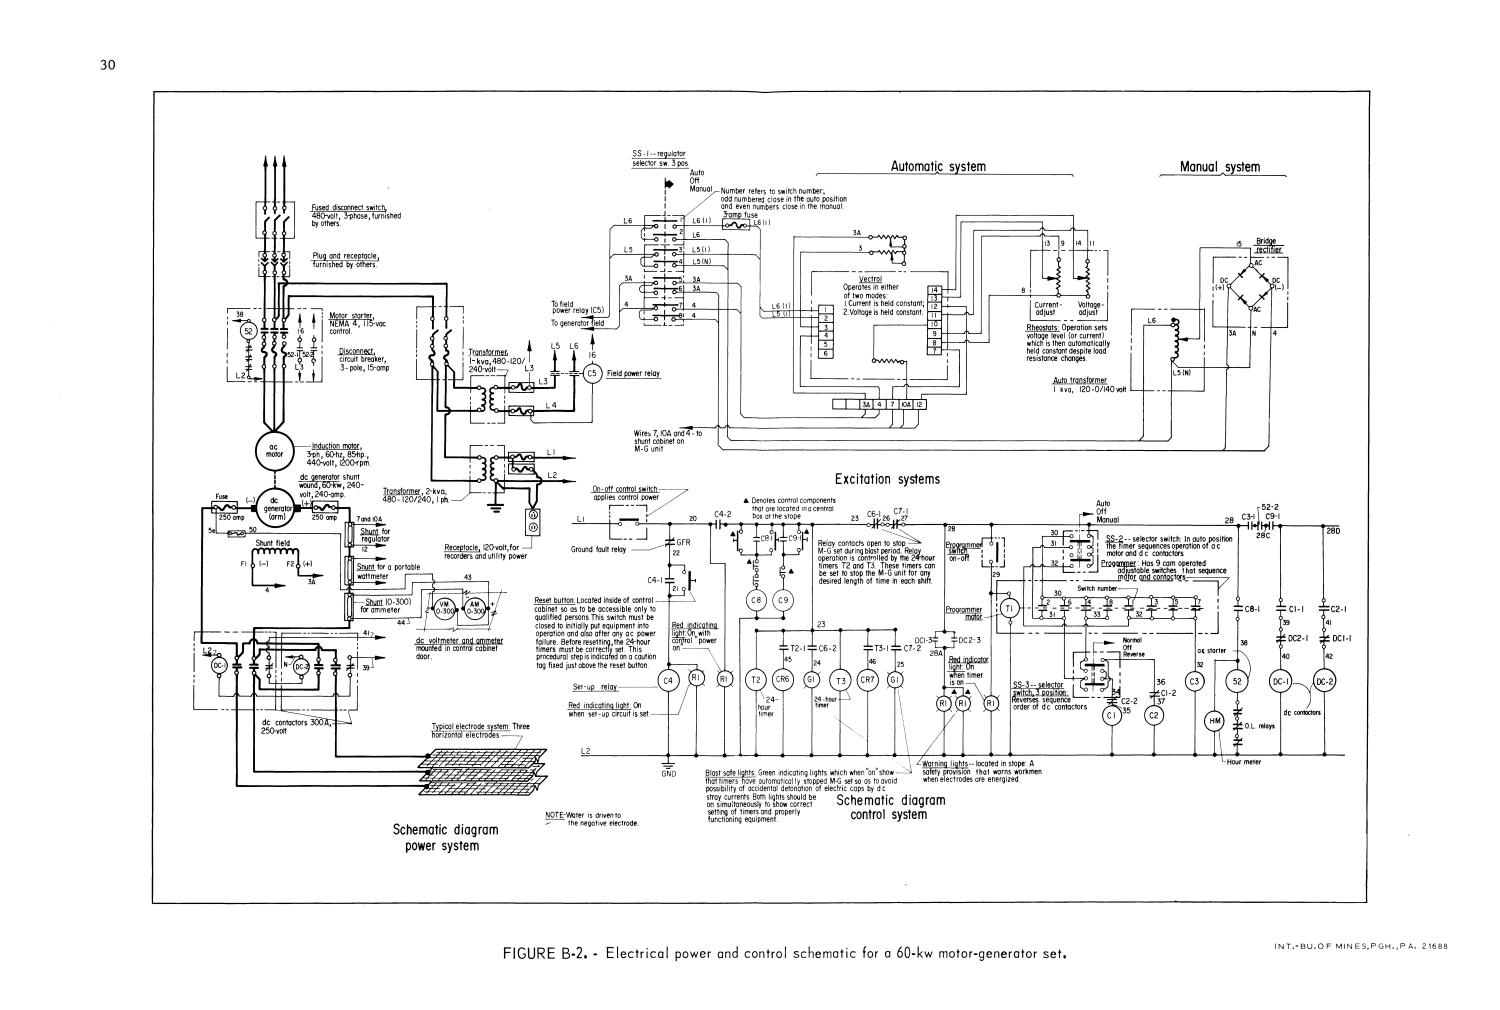 120 240 motor wiring diagram fiction vs nonfiction venn electrokinetic consolidation of slimes in an underground